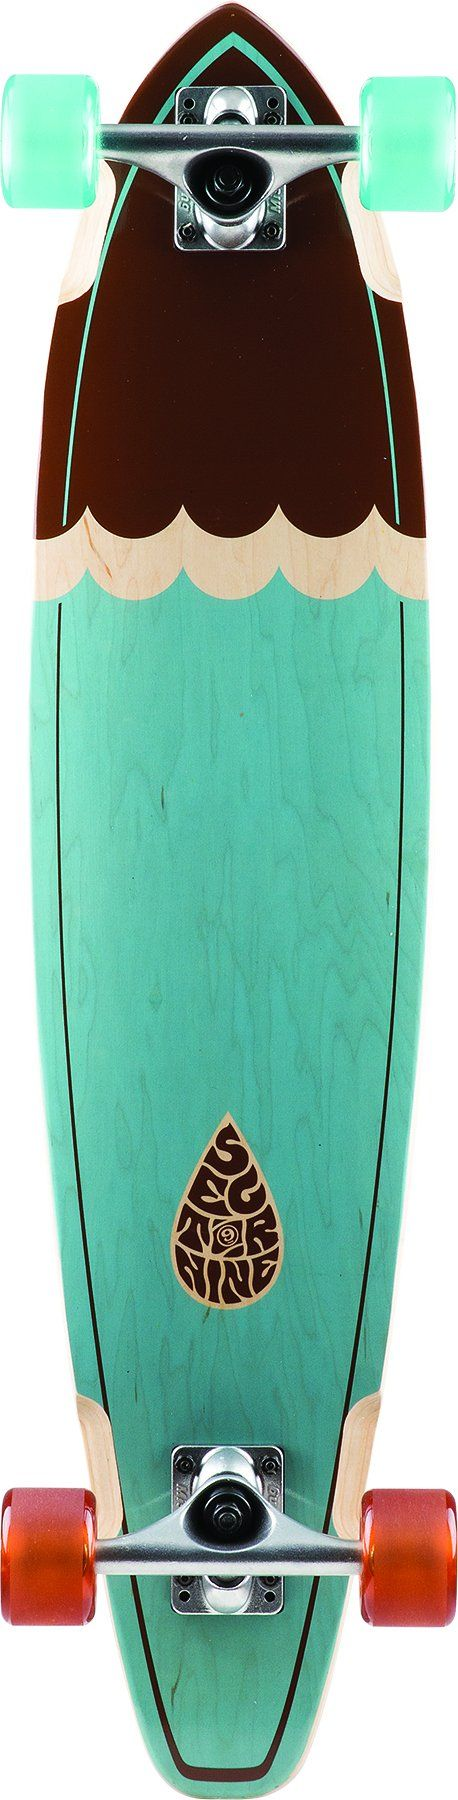 "Sector 9 Highline Blue and Brown Complete Pintail Longboard New On Sale. Sector 9 Highline 2016 Longboard Measures 34.5"" x 8.0"". Sector 9 Longboard Trucks. Sector 9 Longboard Wheels. Sector 9 Grip Tape, Sector 9 Speed Bearings. Comes Fully Assembled and Ready to Ride!."